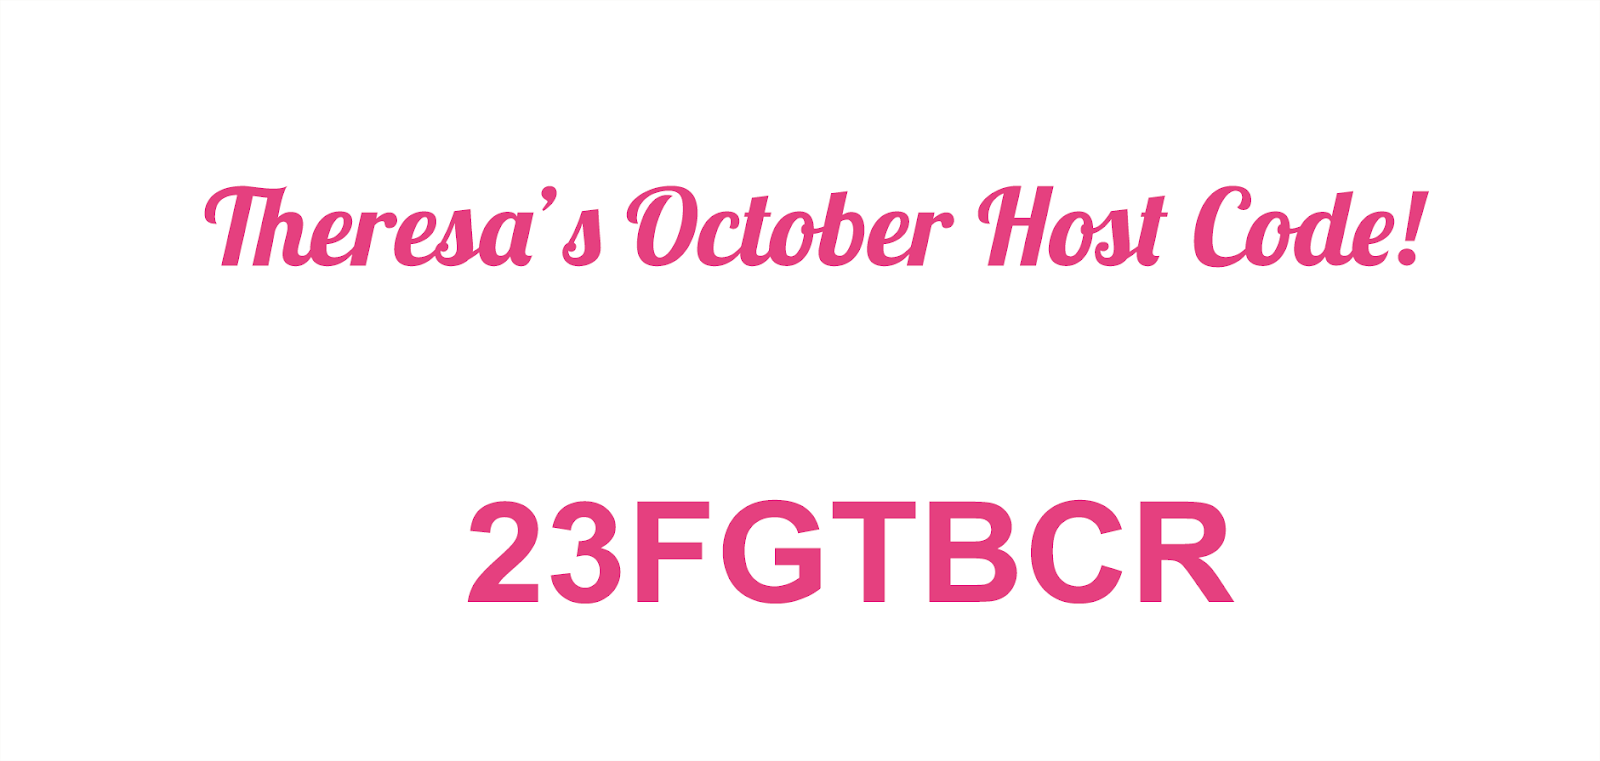 This Month's Host Code